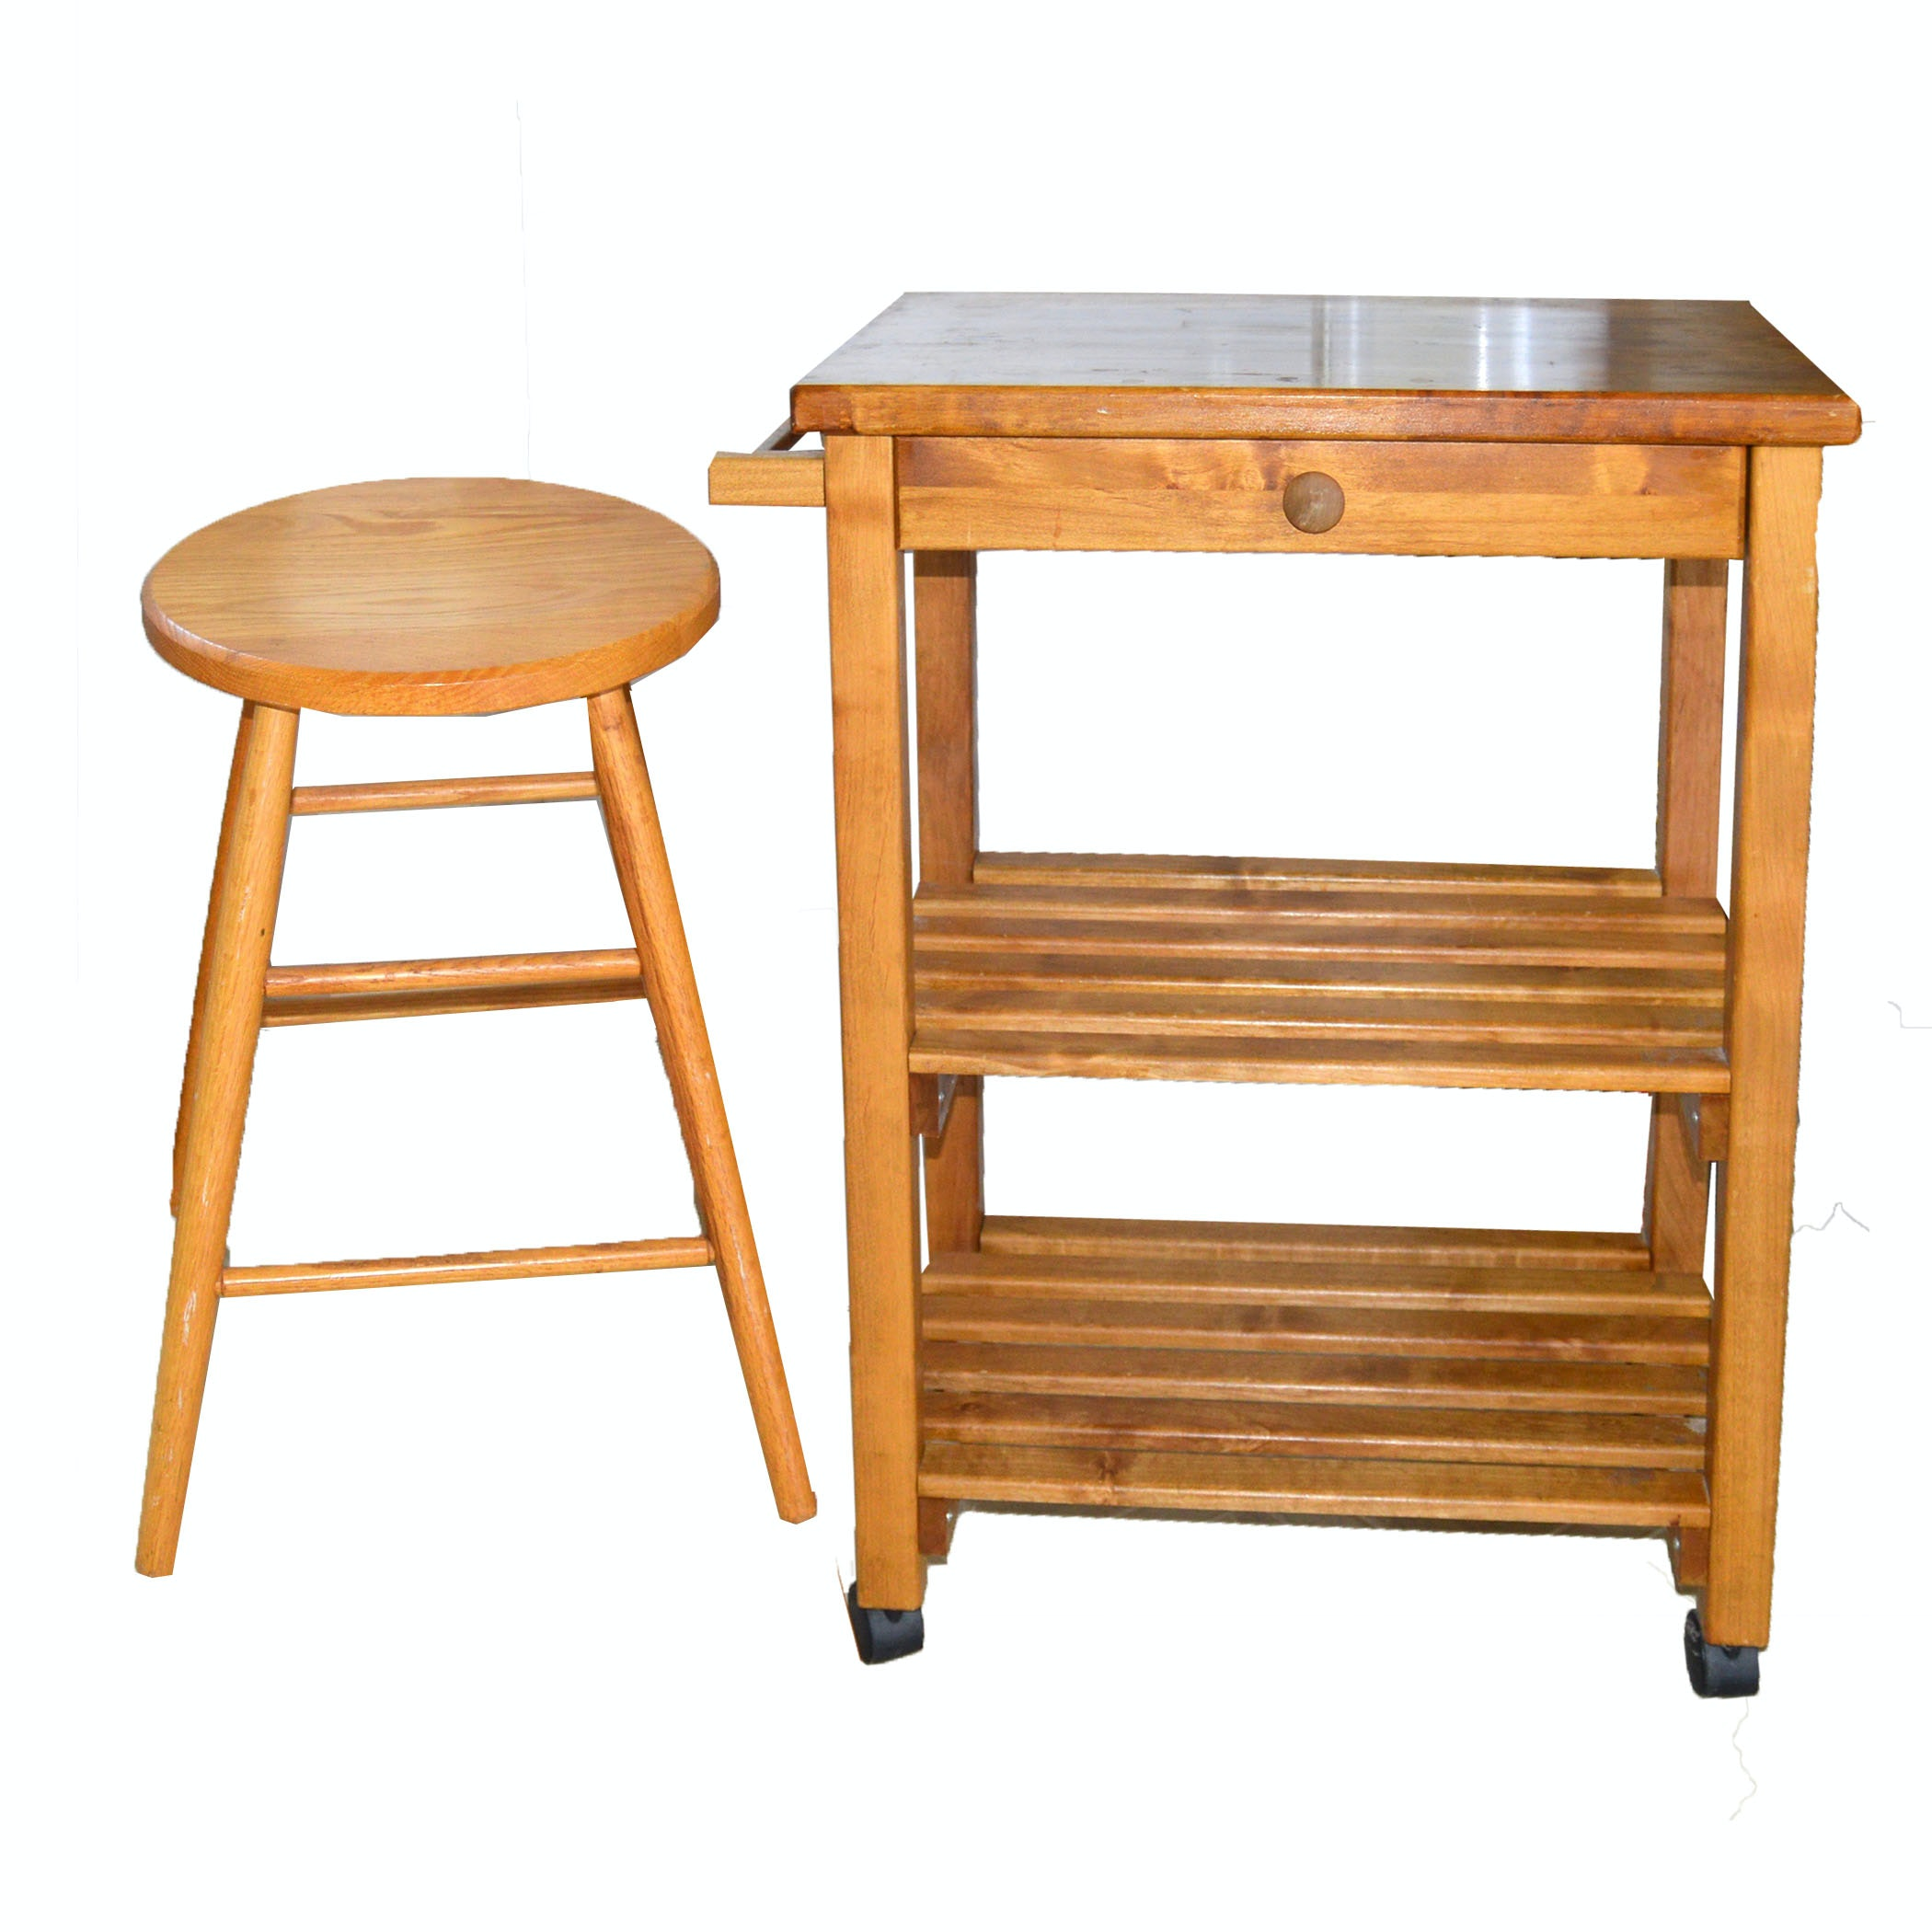 Wooden Kitchen Island and Two Stools